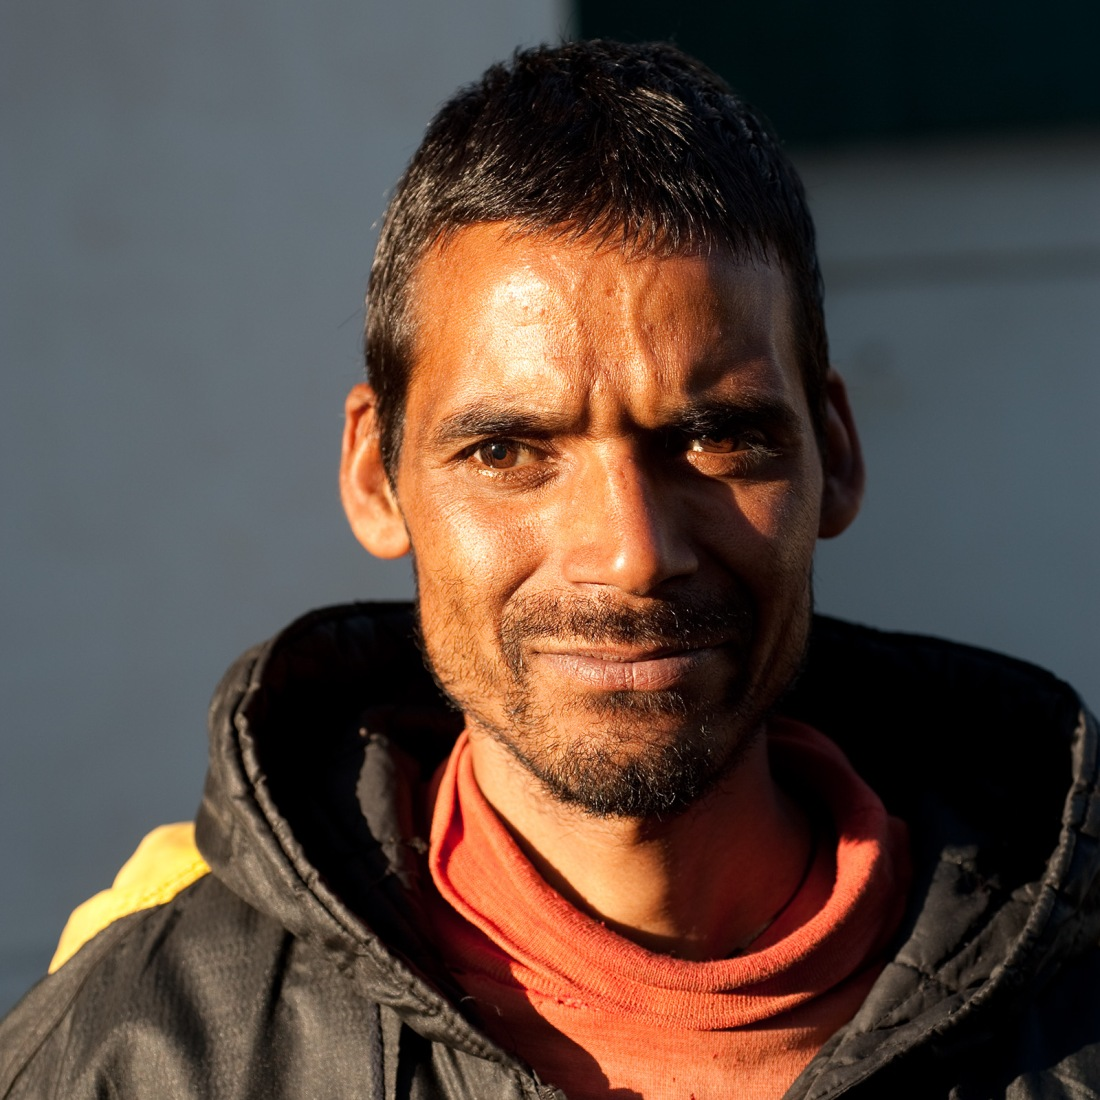 Bahagaan, one of our porters, at Ghuttu on our last day.